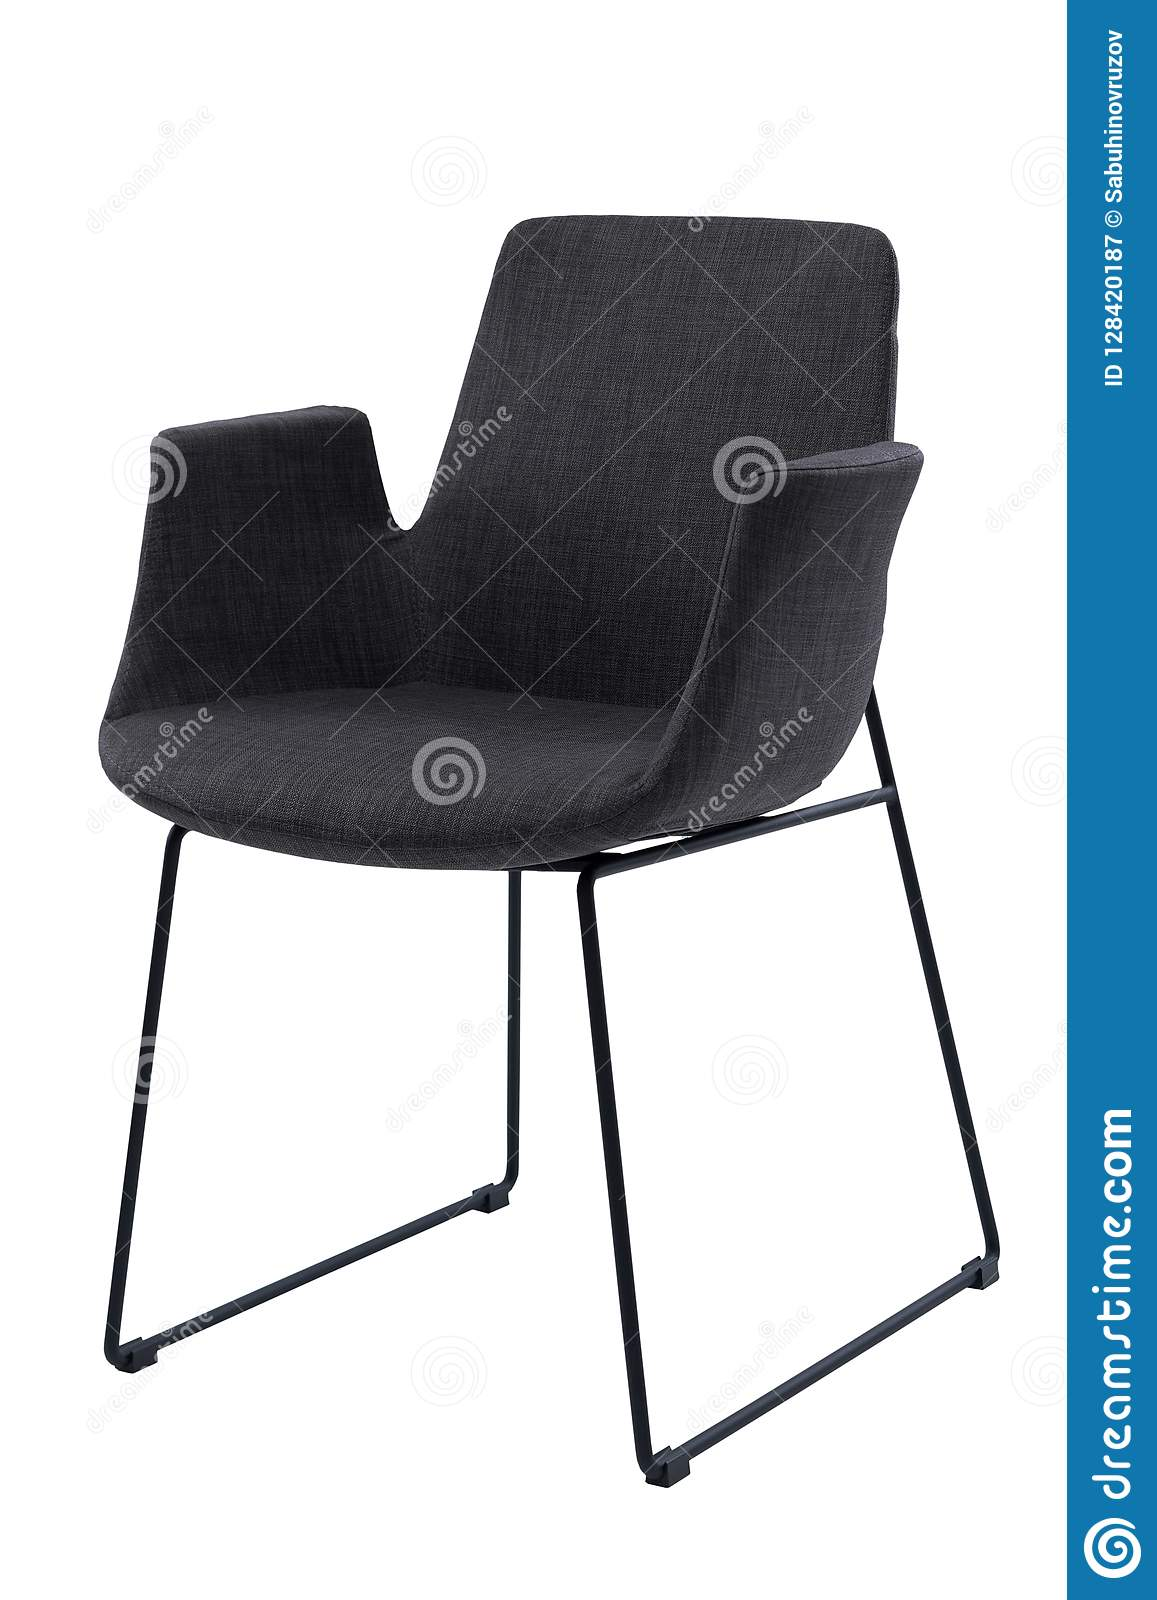 Modern Black Office Chair With Armrests Isolated On White